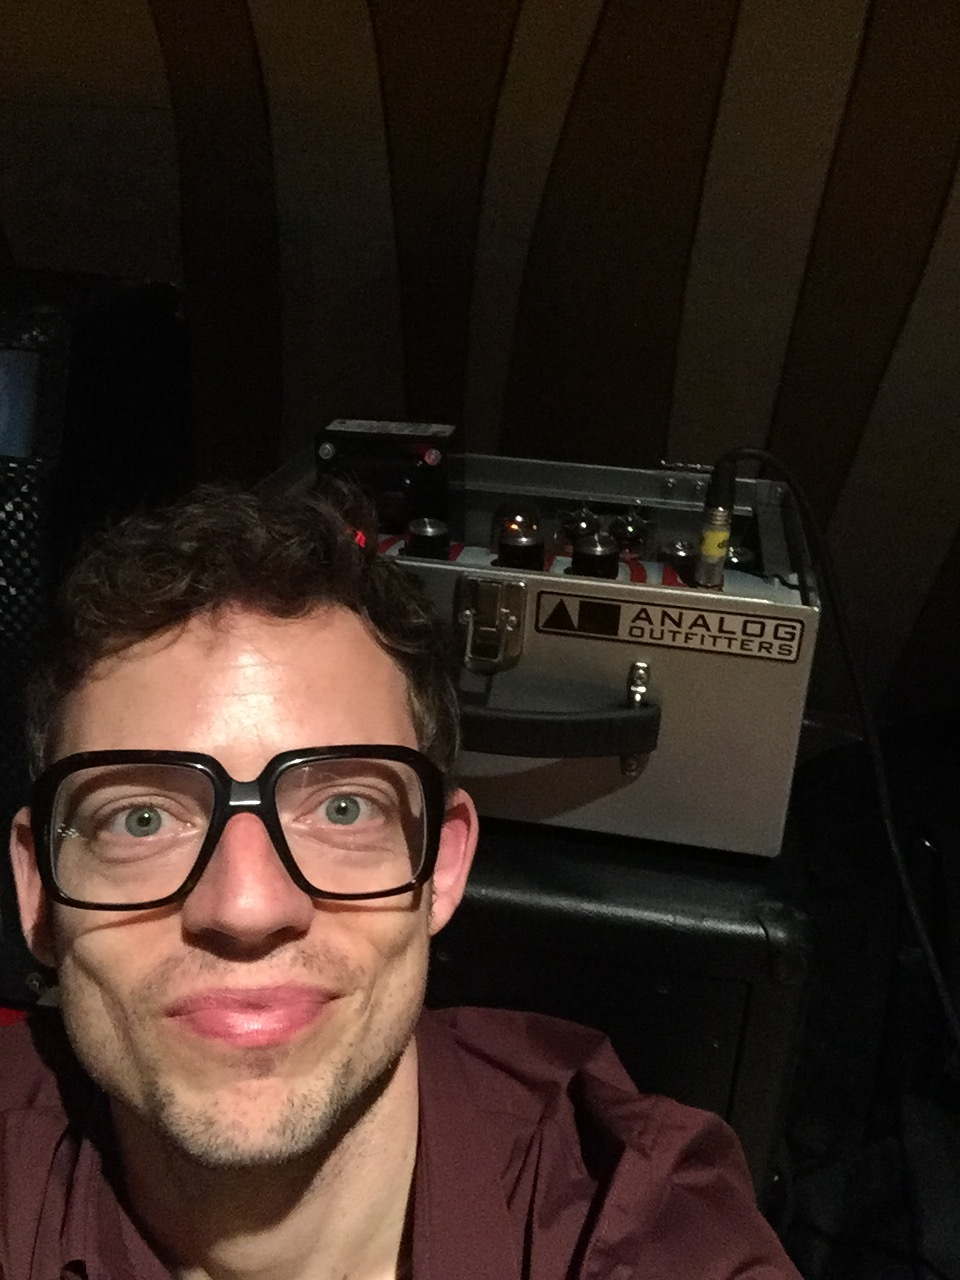 Jarle Bernhoft      AO Gear:  Sarge & Road Amp  Jarle is a Norwegian singer, multi-instrumentalist, composer and lyricist. His album  Islander  was nominated for a Grammy Award for Best R&B Album in 2015.